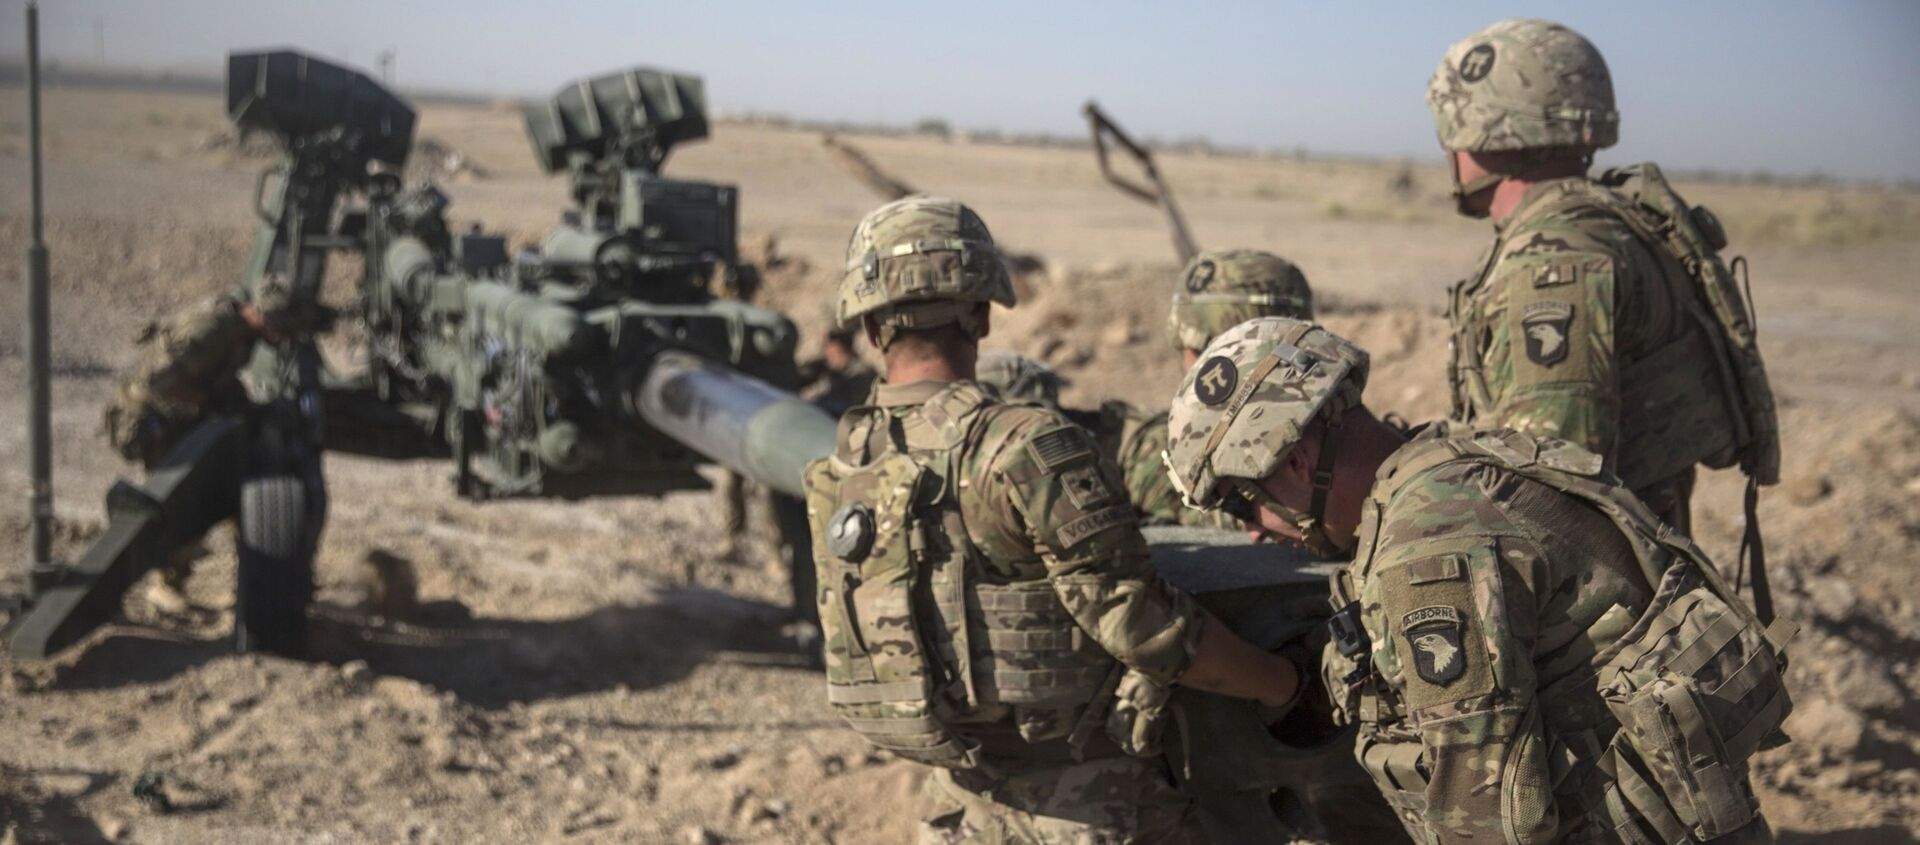 This June 10, 2017 photo provided by Operation Resolute Support, U.S. Soldiers with Task Force Iron maneuver an M-777 howitzer, so it can be towed into position at Bost Airfield, Afghanistan - Sputnik Italia, 1920, 14.04.2021